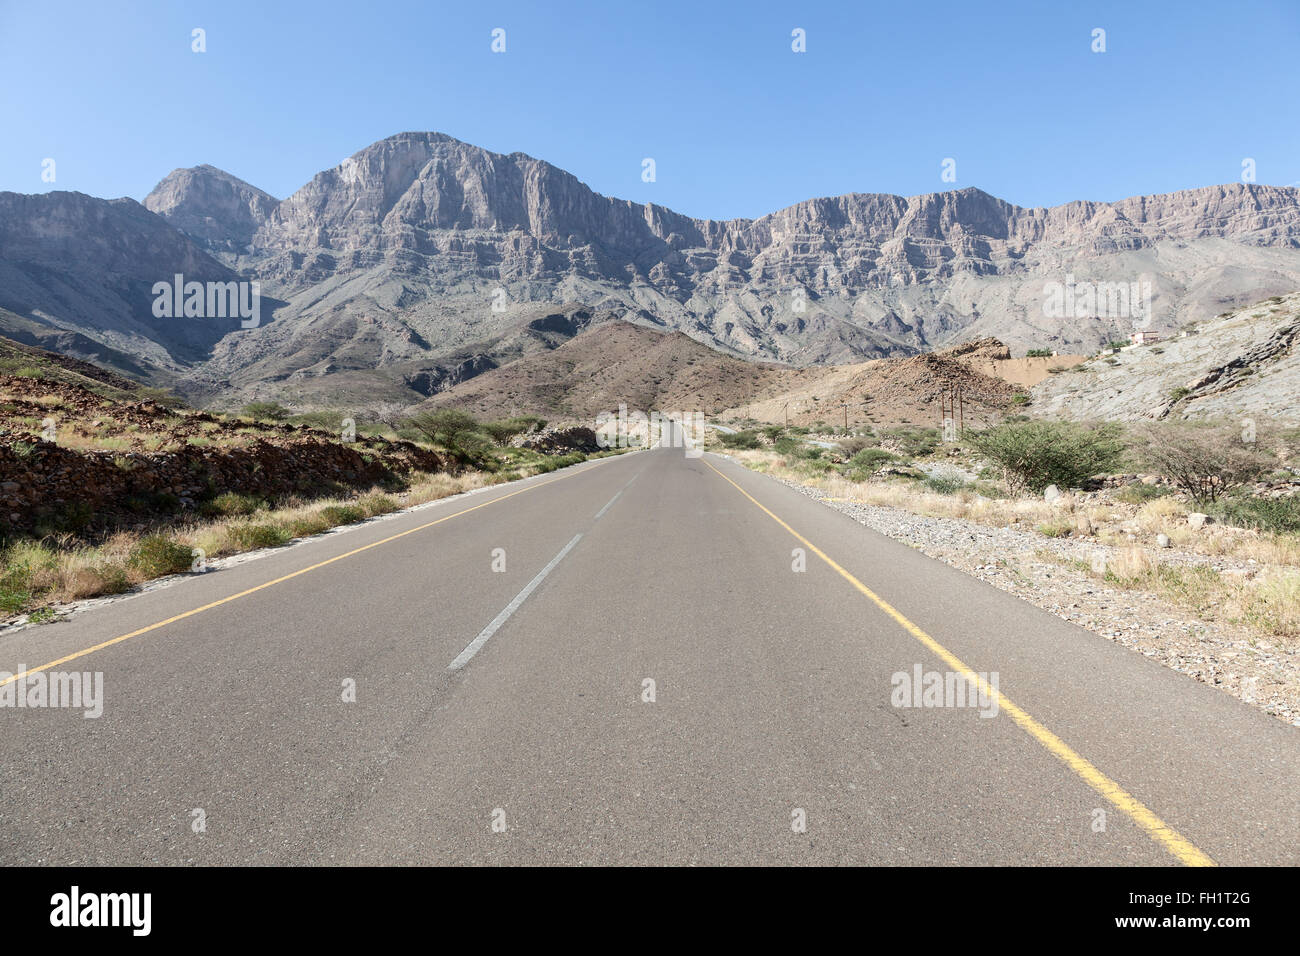 Road in the Hajar mountains, Sultanate of Oman, Middle East - Stock Image